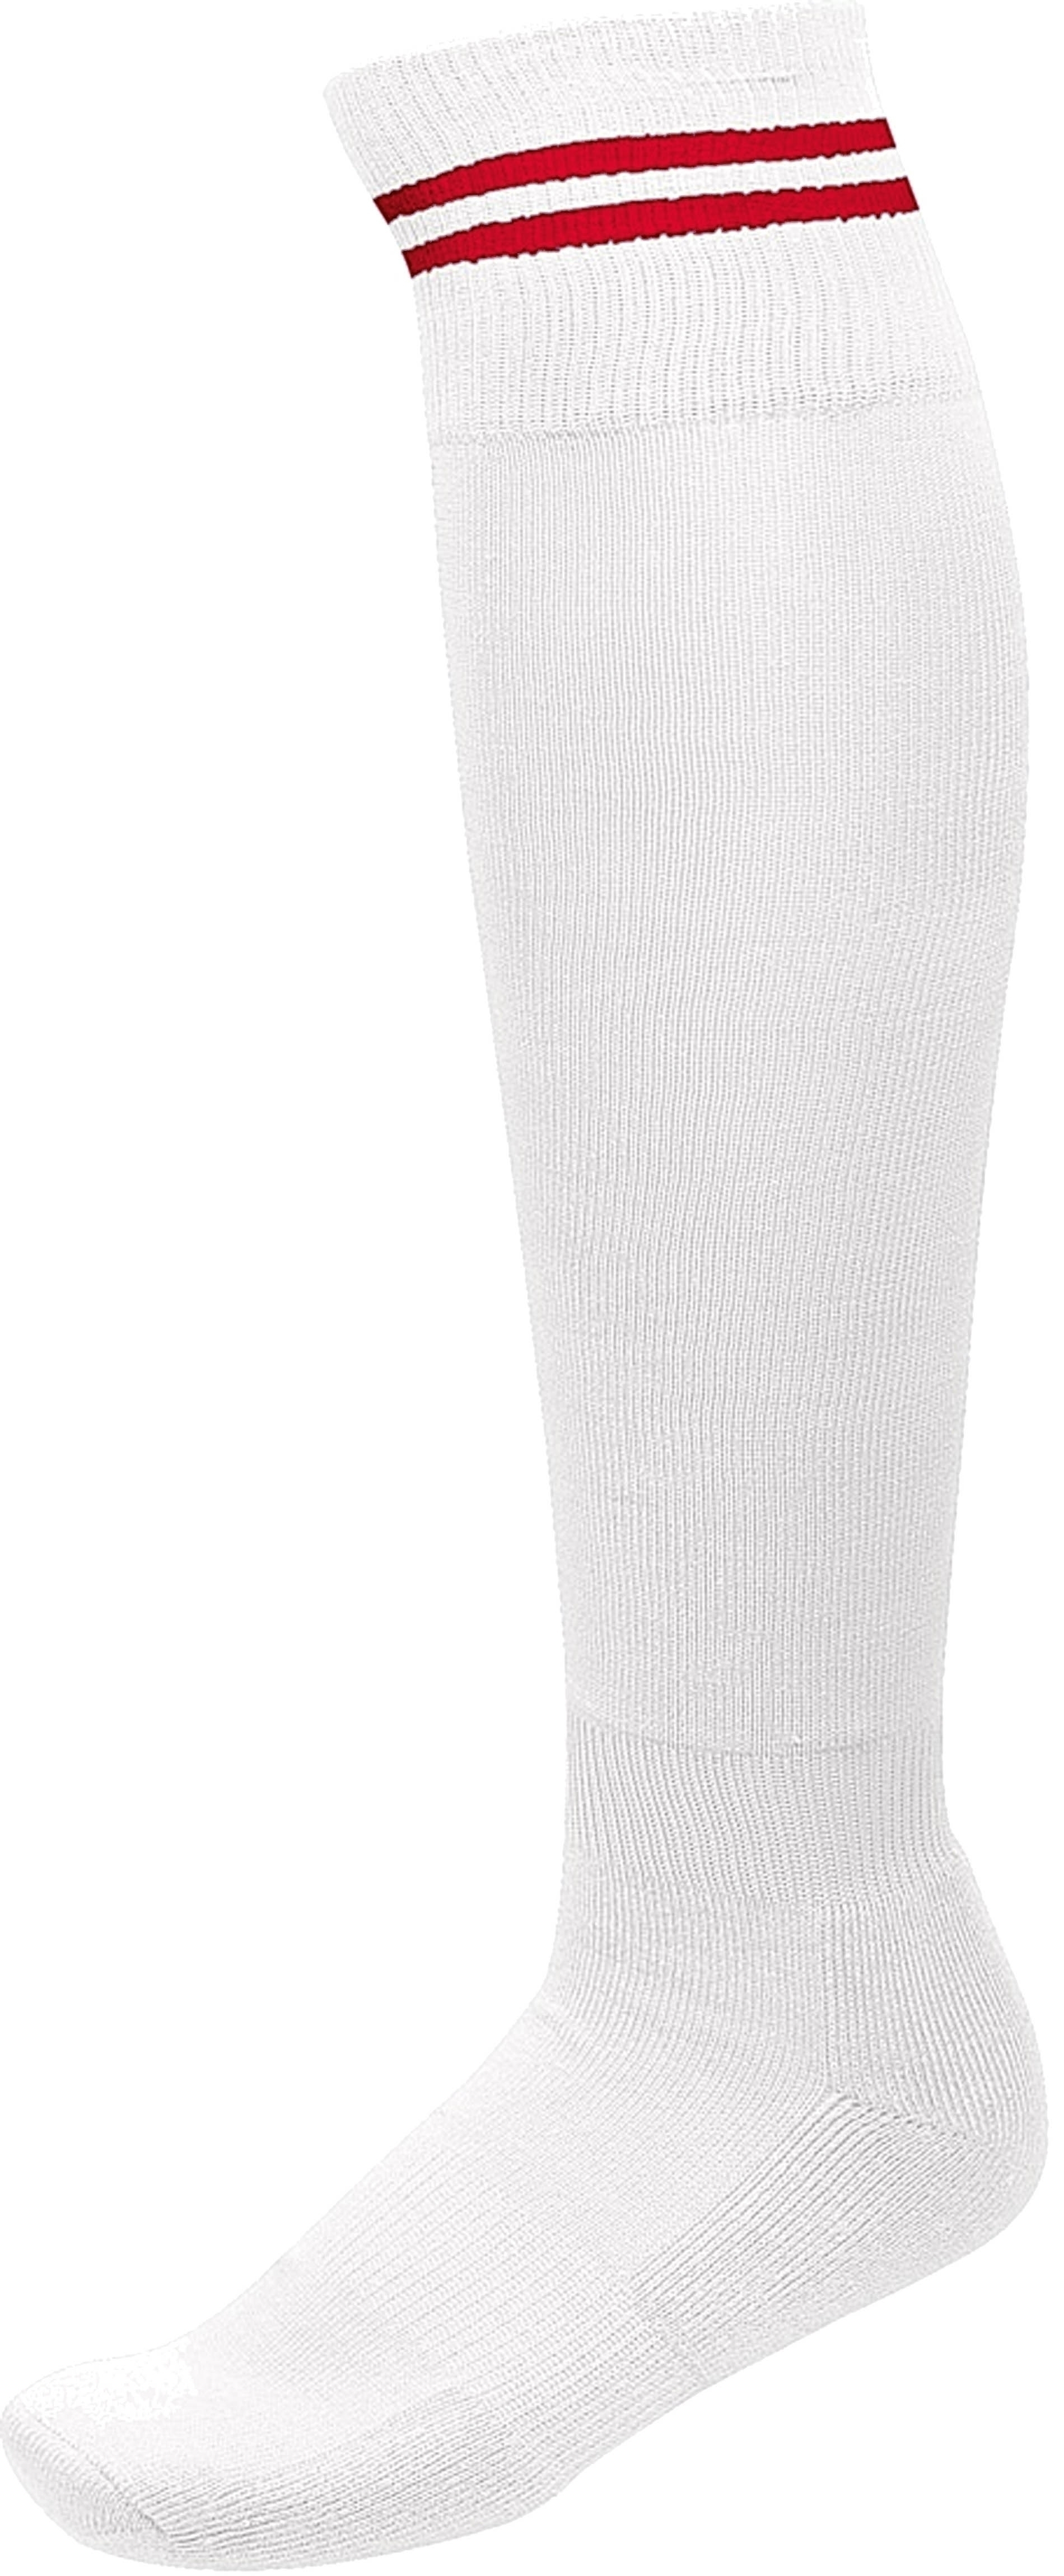 CHAUSSETTES DE SPORT RAYÉES White / Sporty Red Blanc